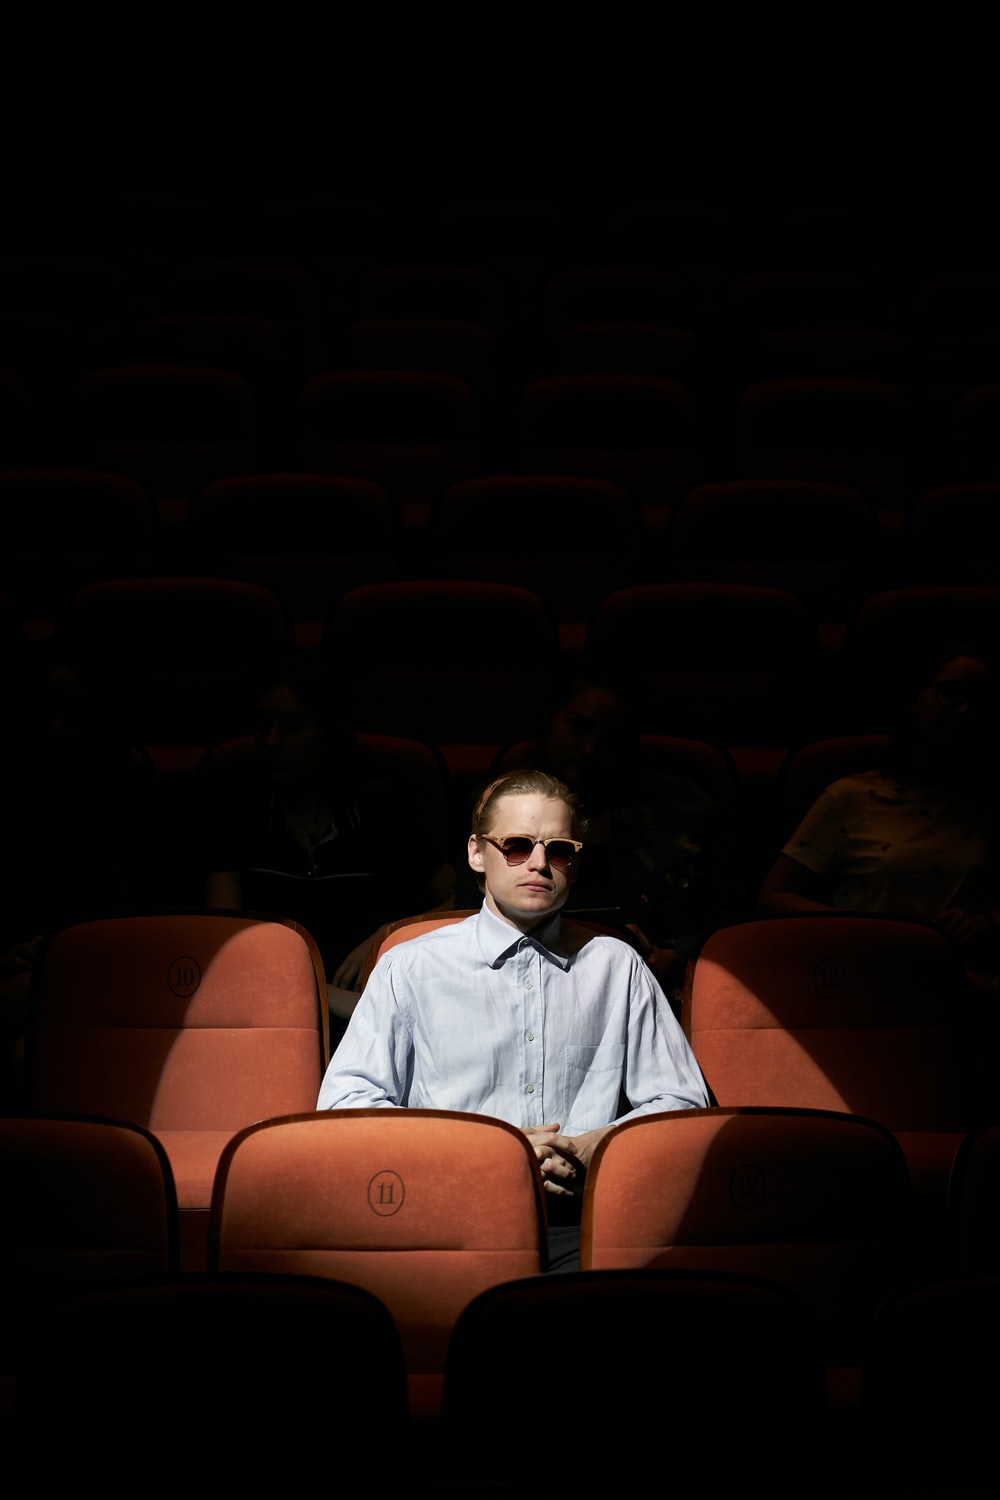 man in blue dress shirt wearing sunglasses sitting on brown chair